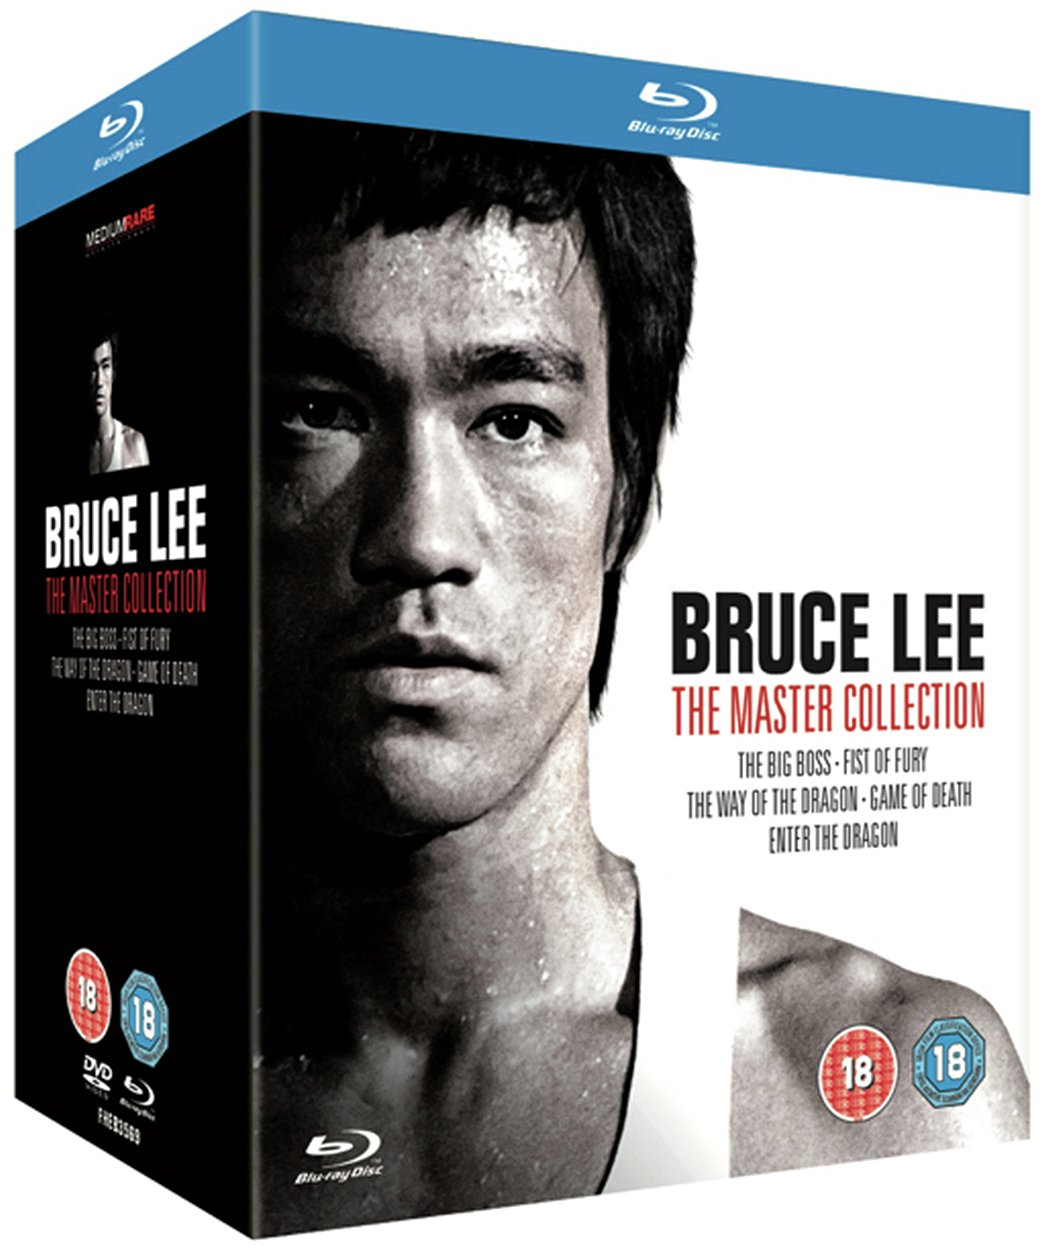 Bruce Lee: The Master Collection Blu-Ray Box Set